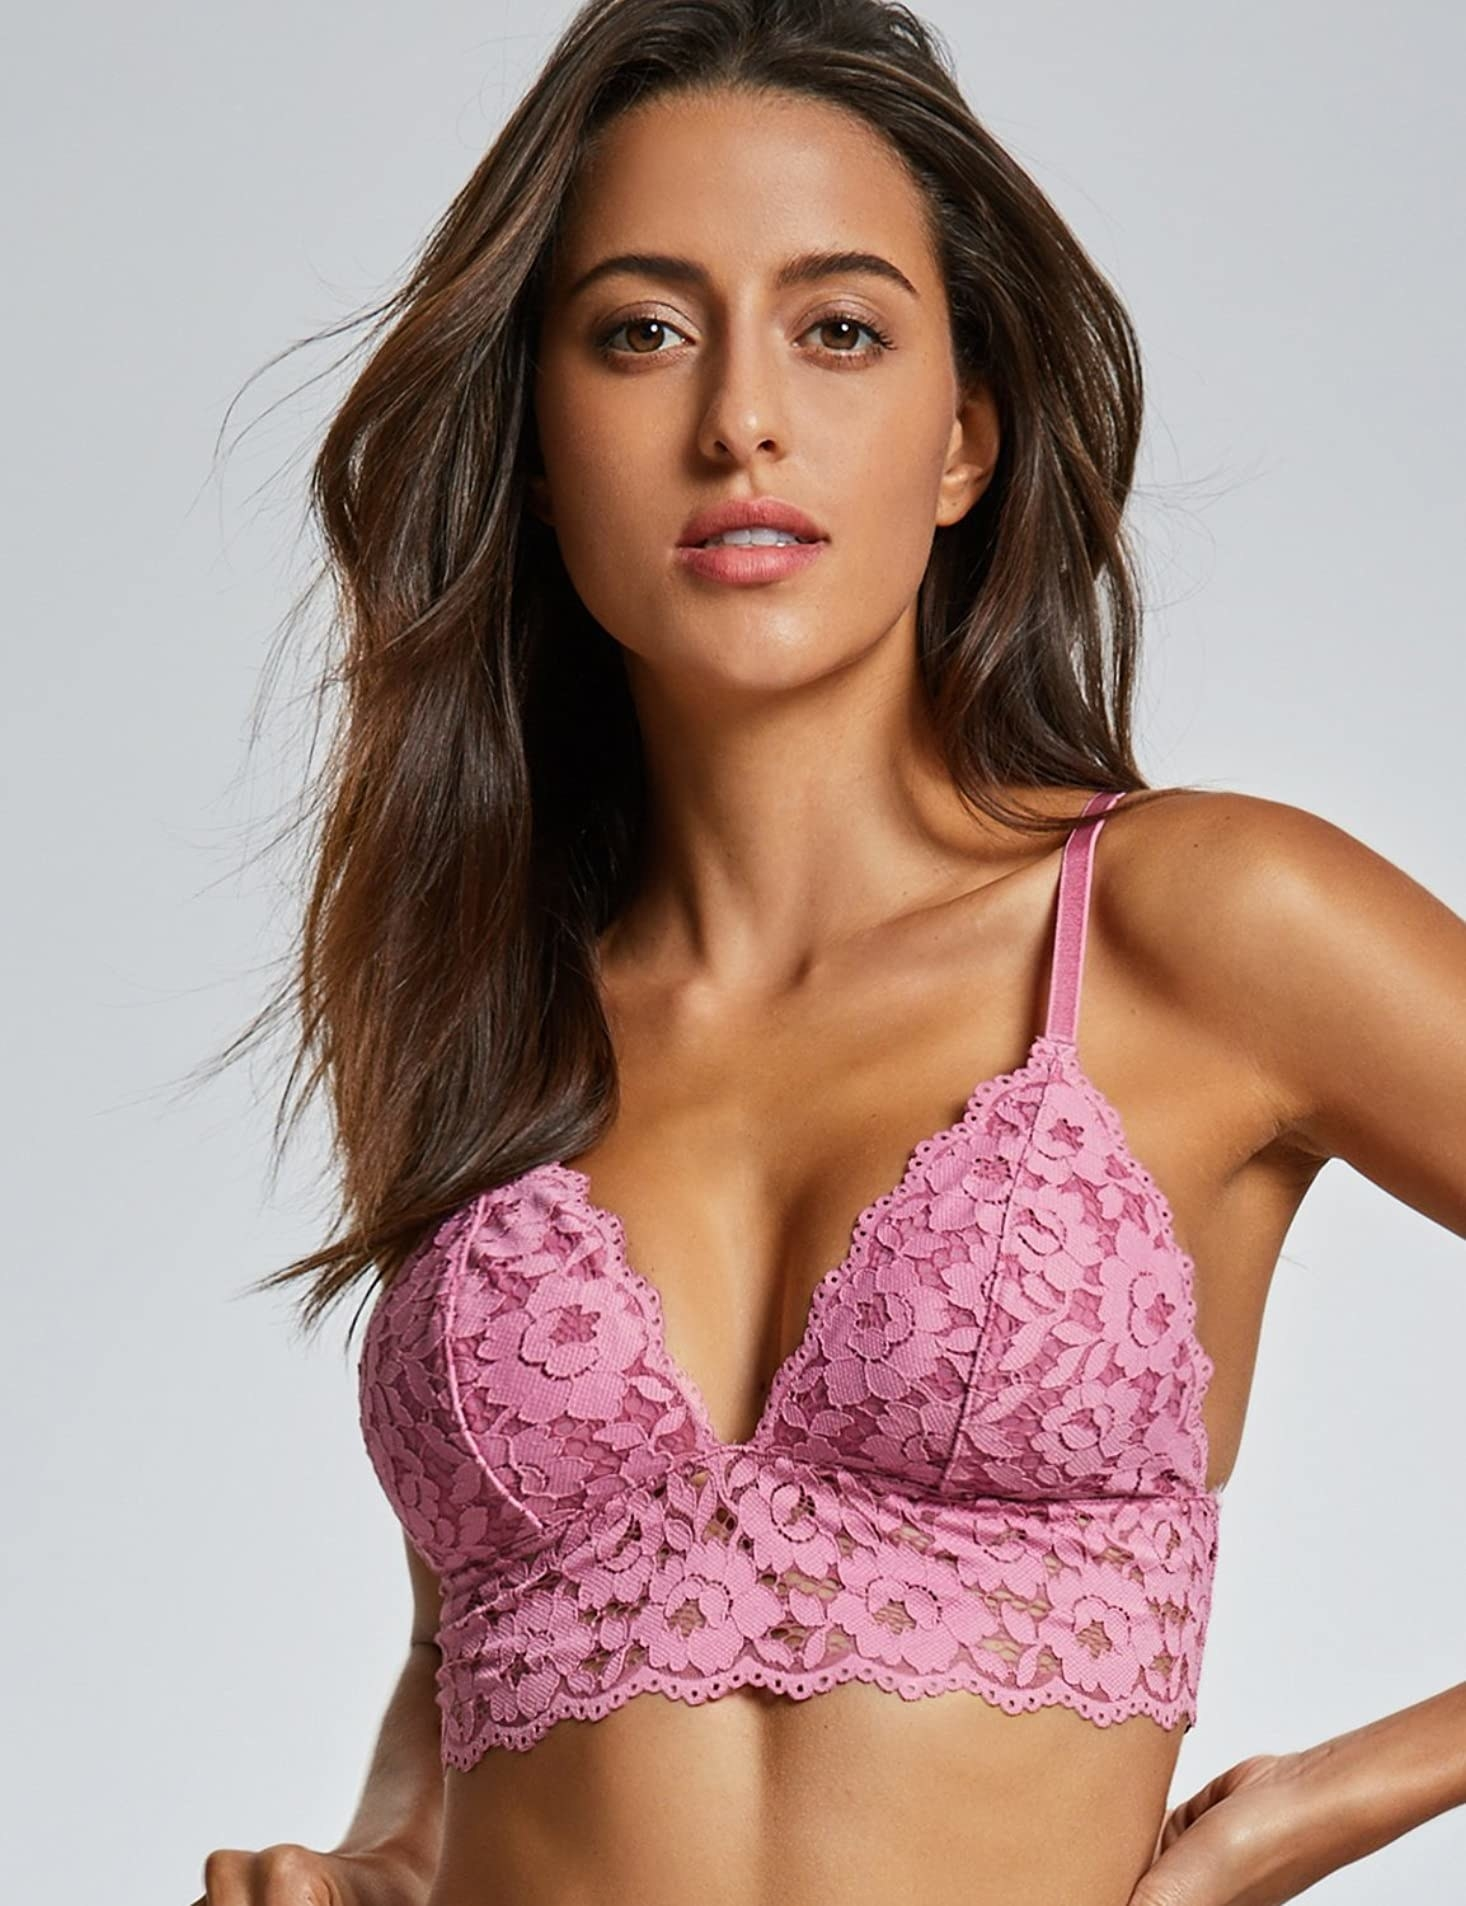 Model wearing the bralette with lace band in pink